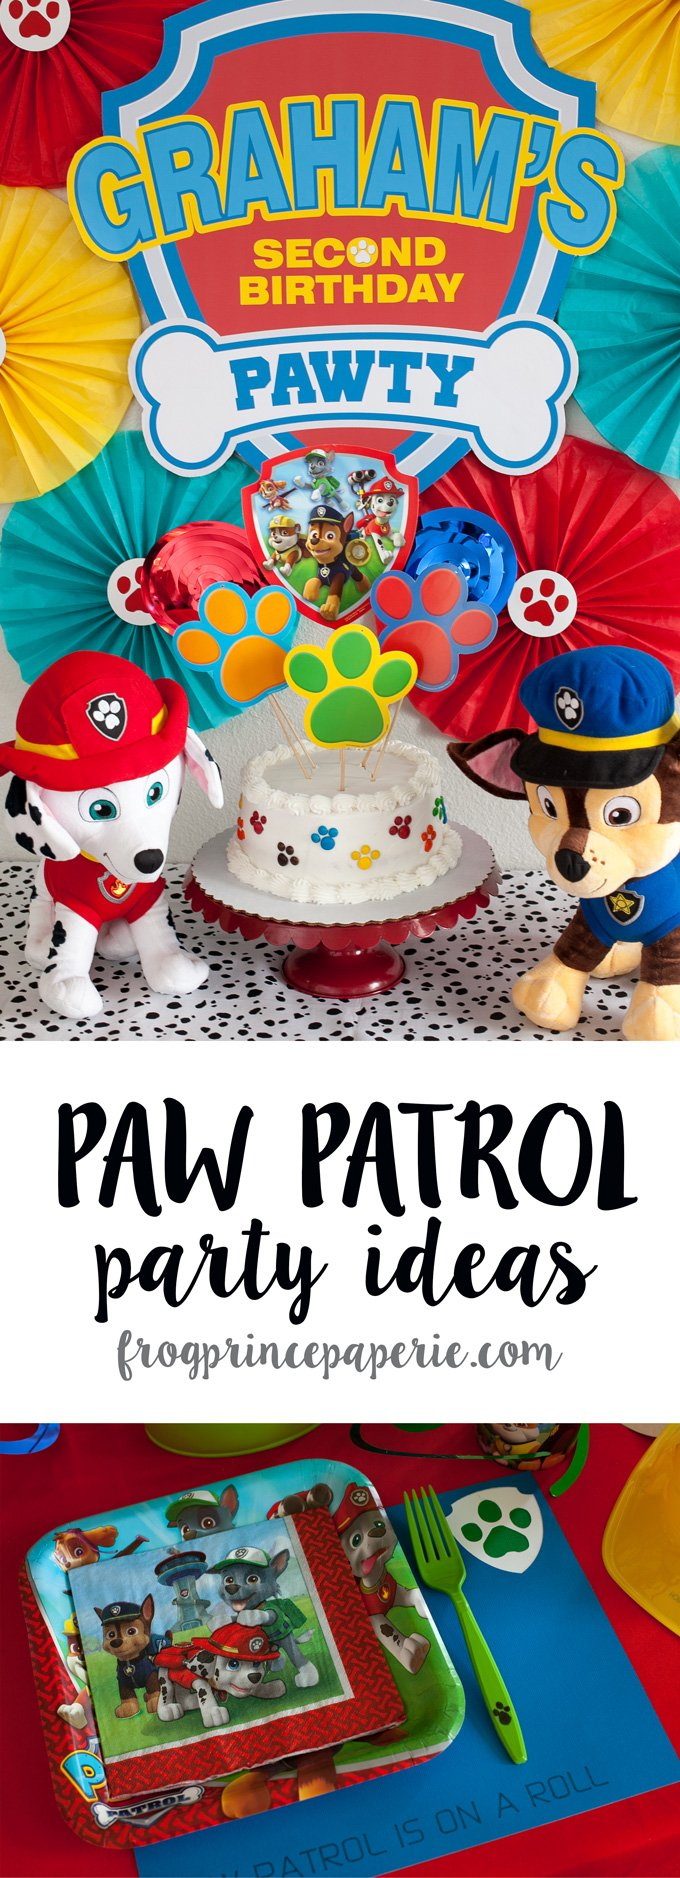 Paw Patrol Birthday Party Ideas For Your